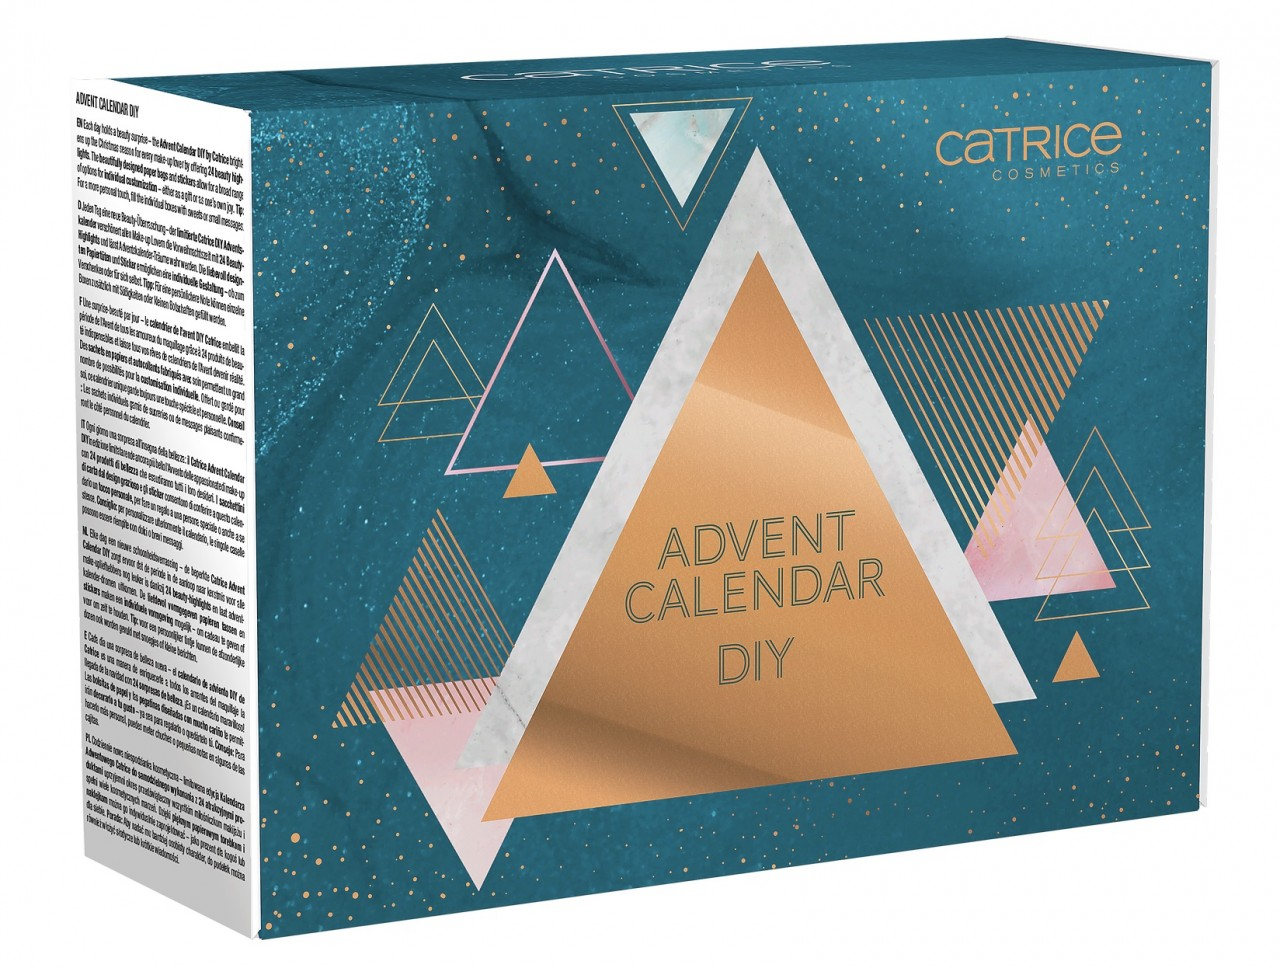 Catrice Advent Calendar 2020